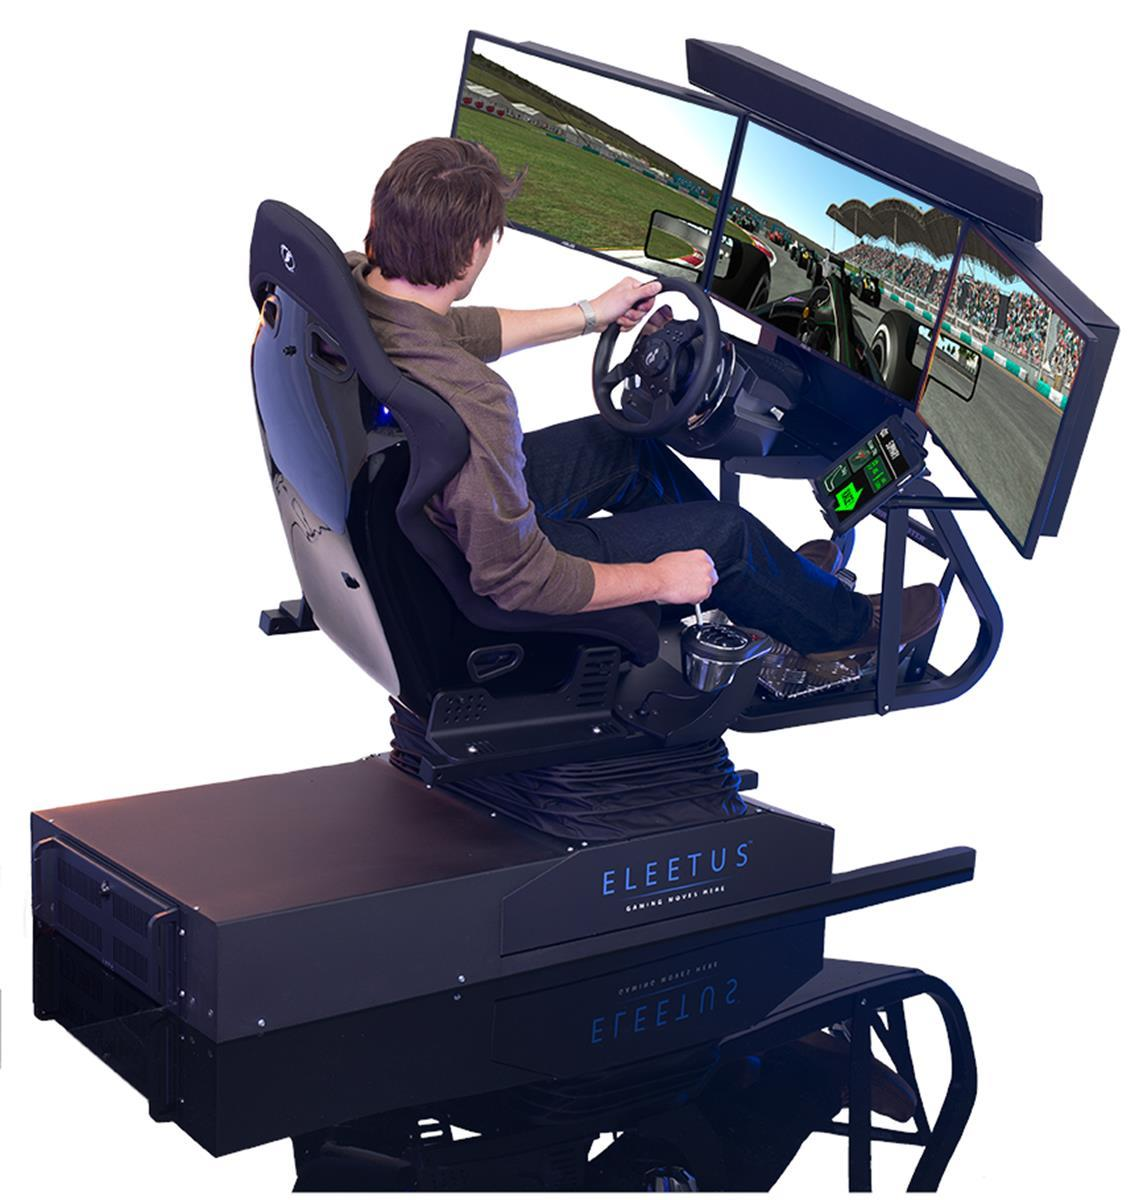 flight simulator chair motion antique wooden chairs pictures eleetus preview gaming nexus